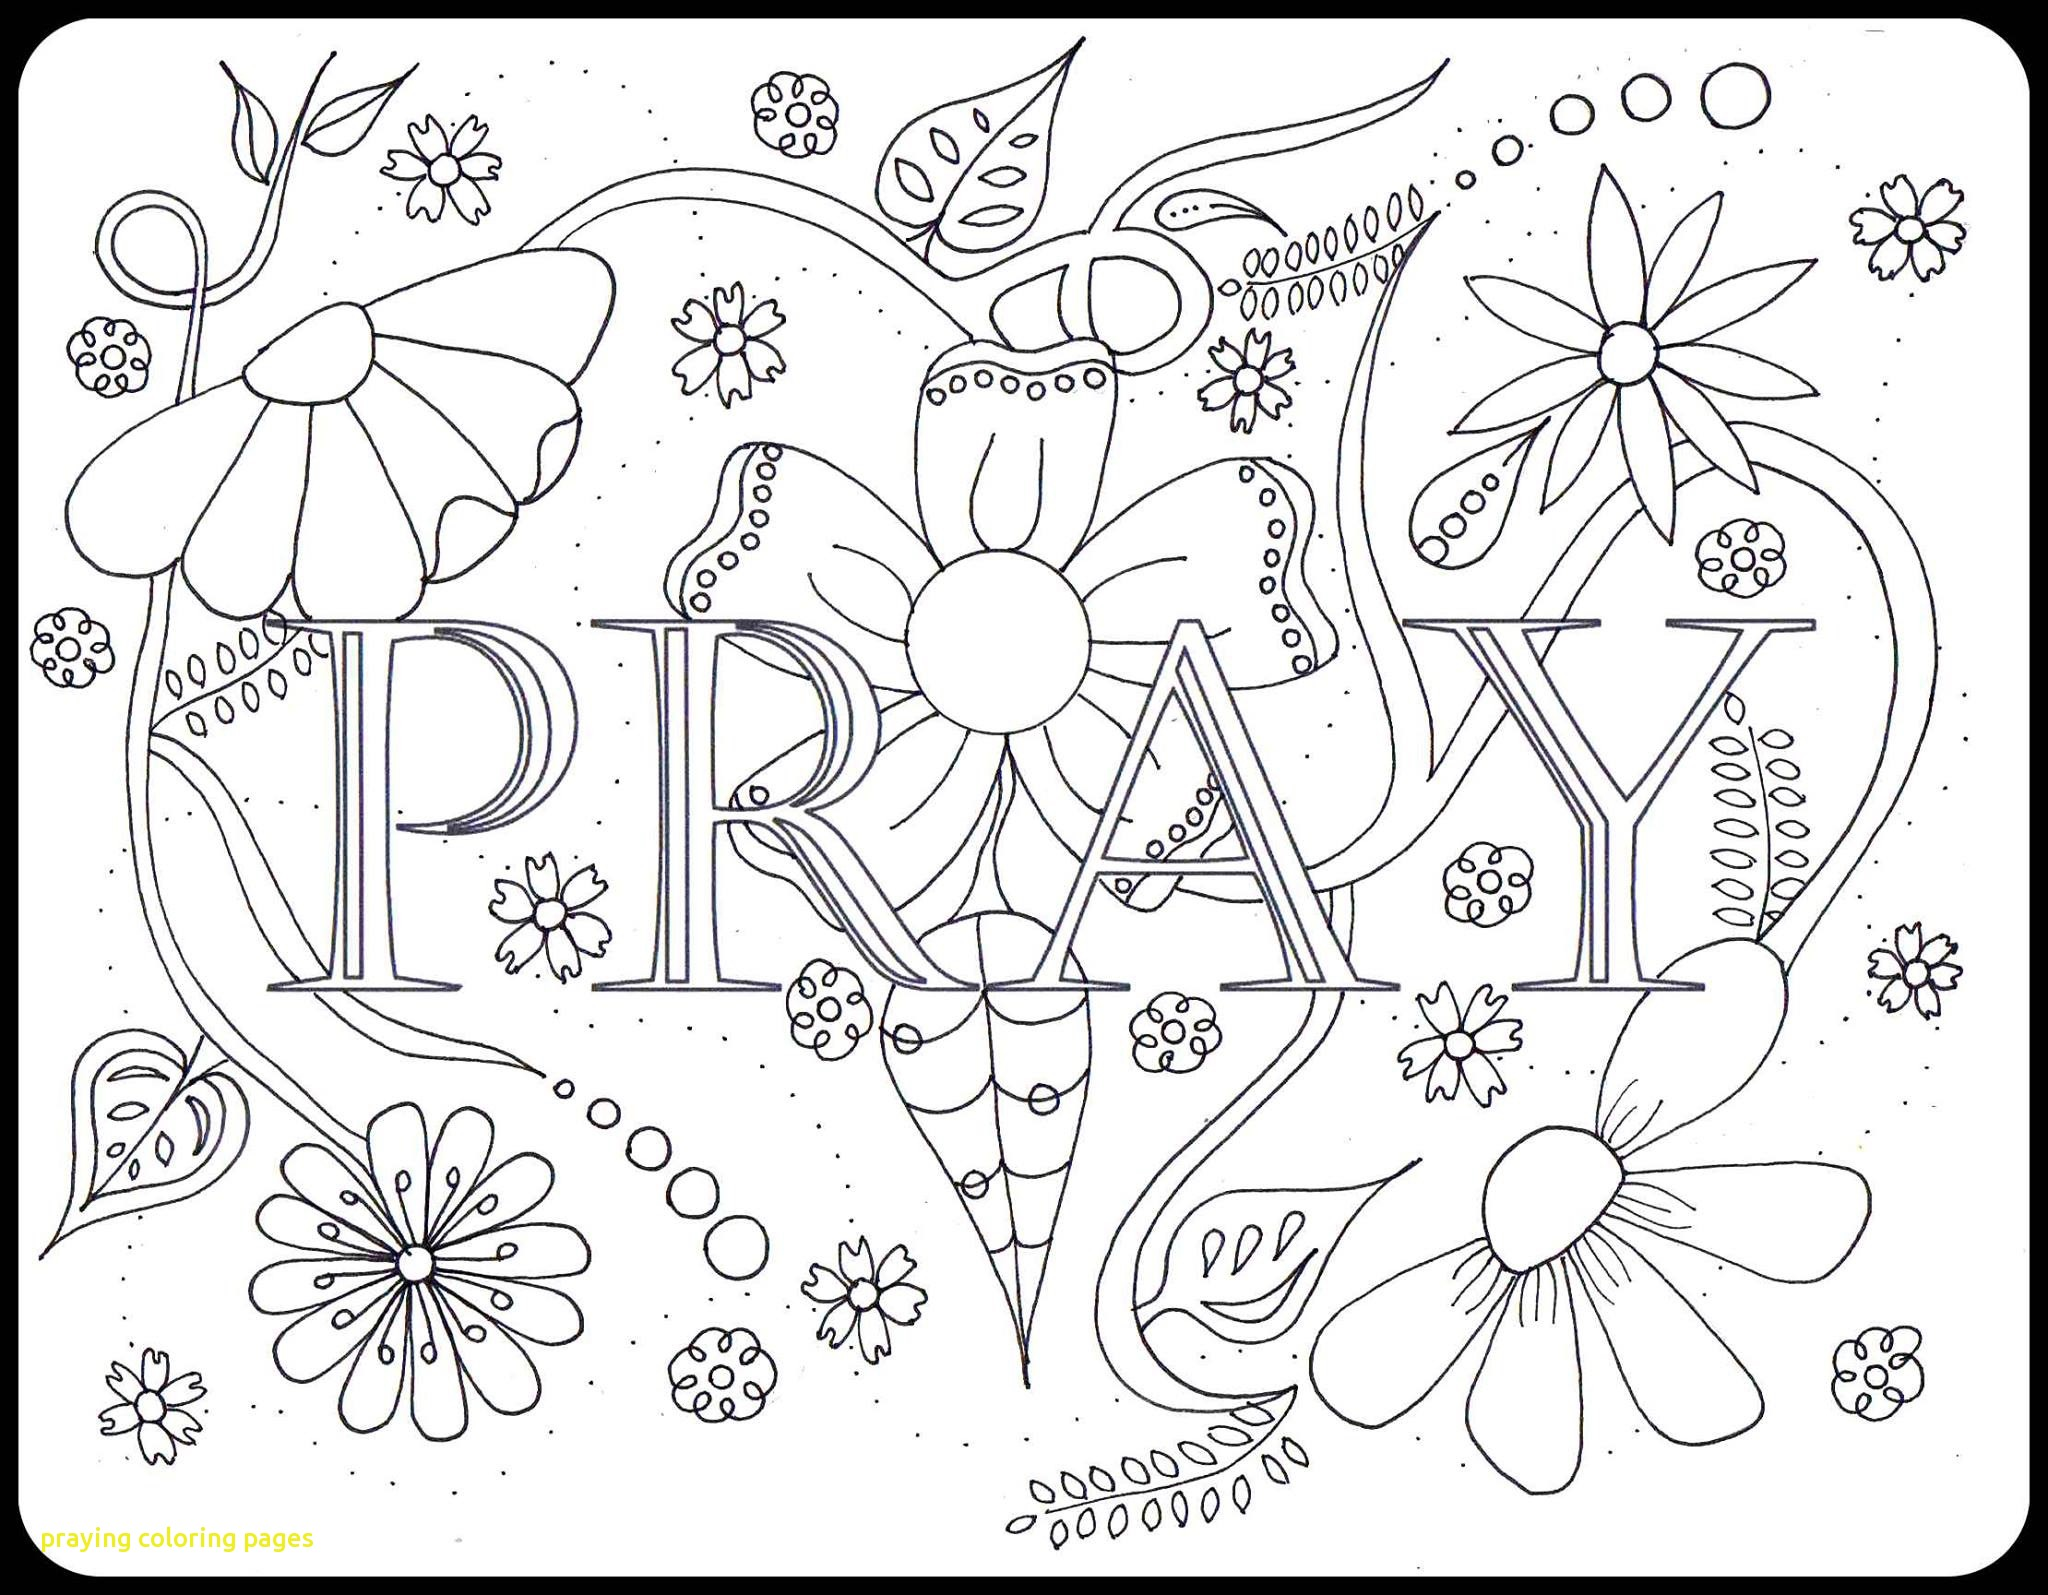 2048x1595 Praying Coloring Pages With Stockphotos Prayer Coloring Pages